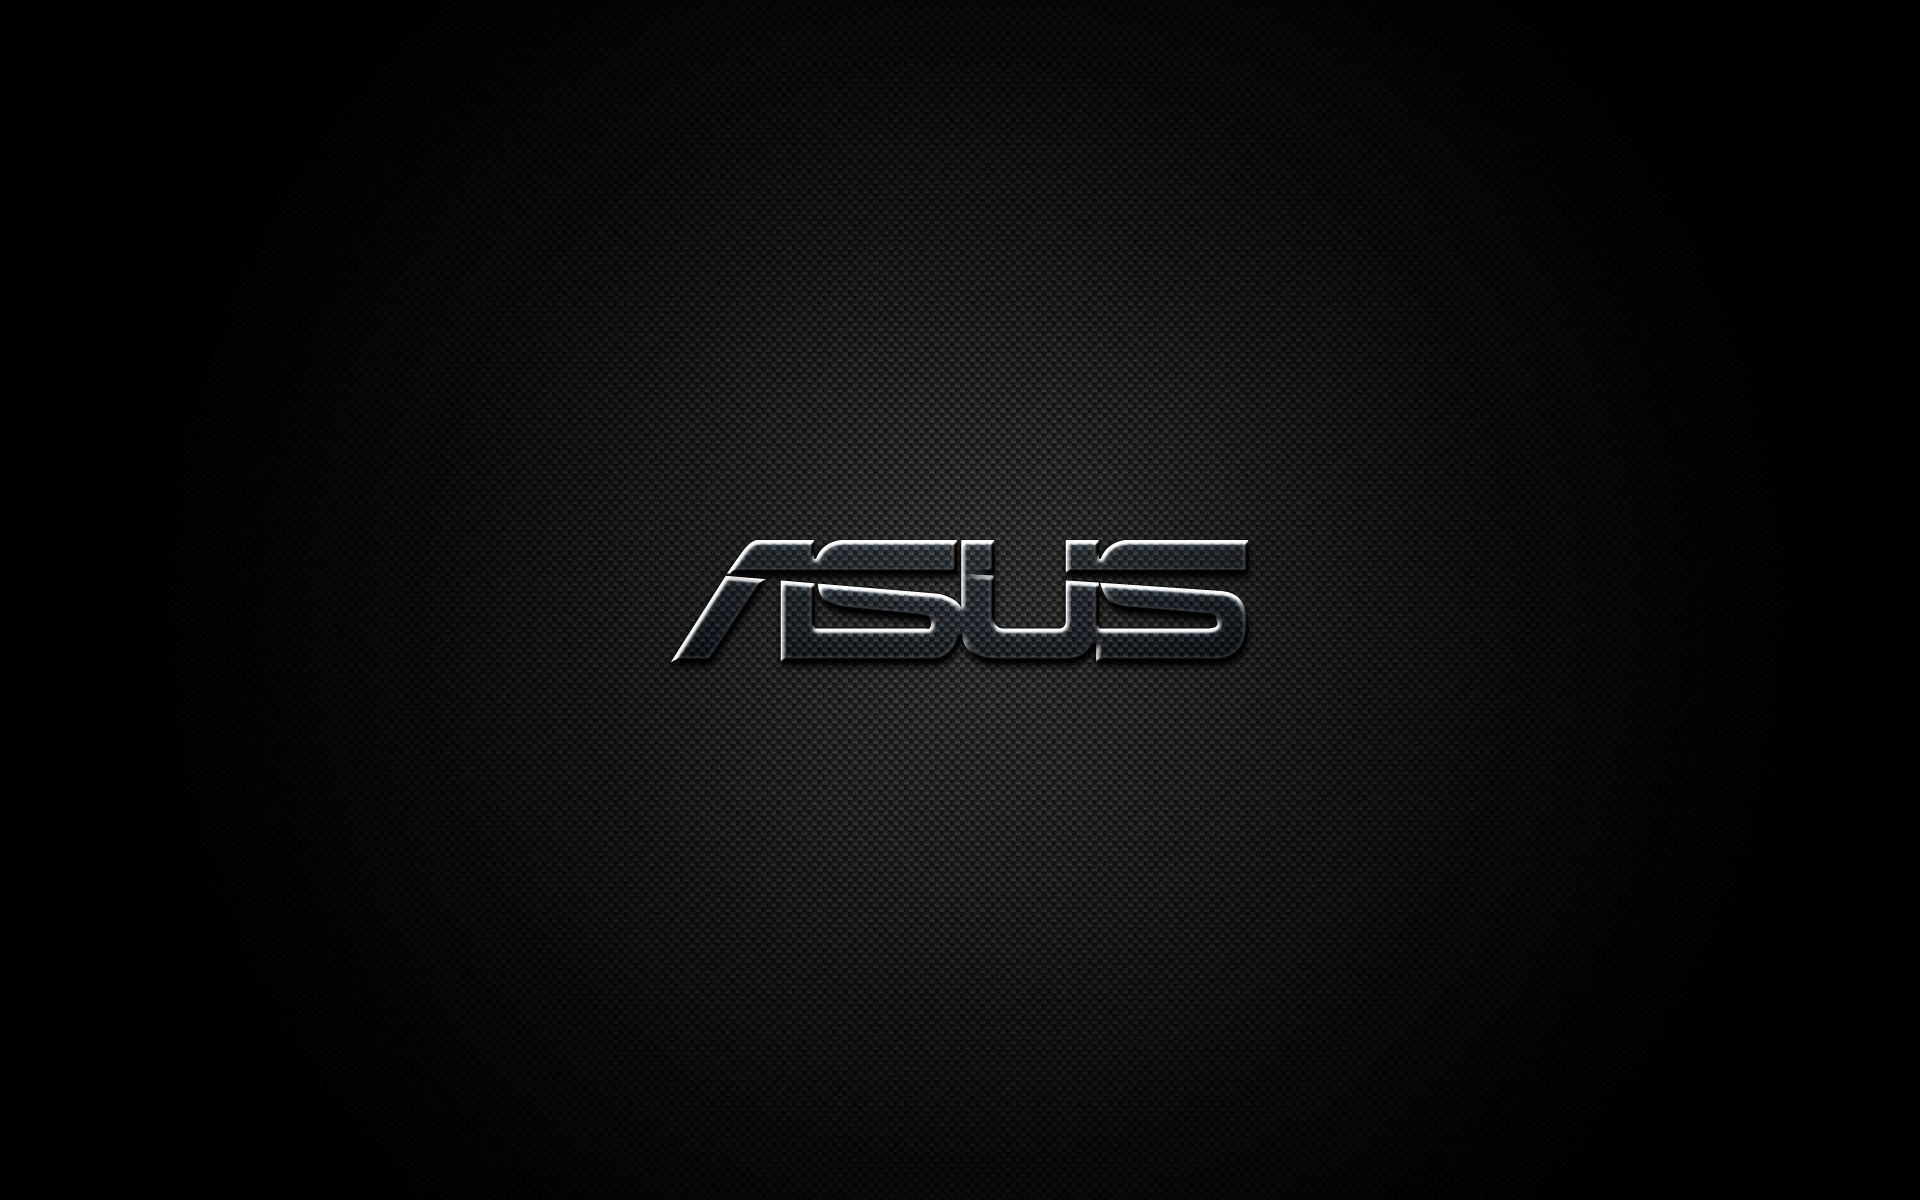 Asus Wallpapers 1366x768